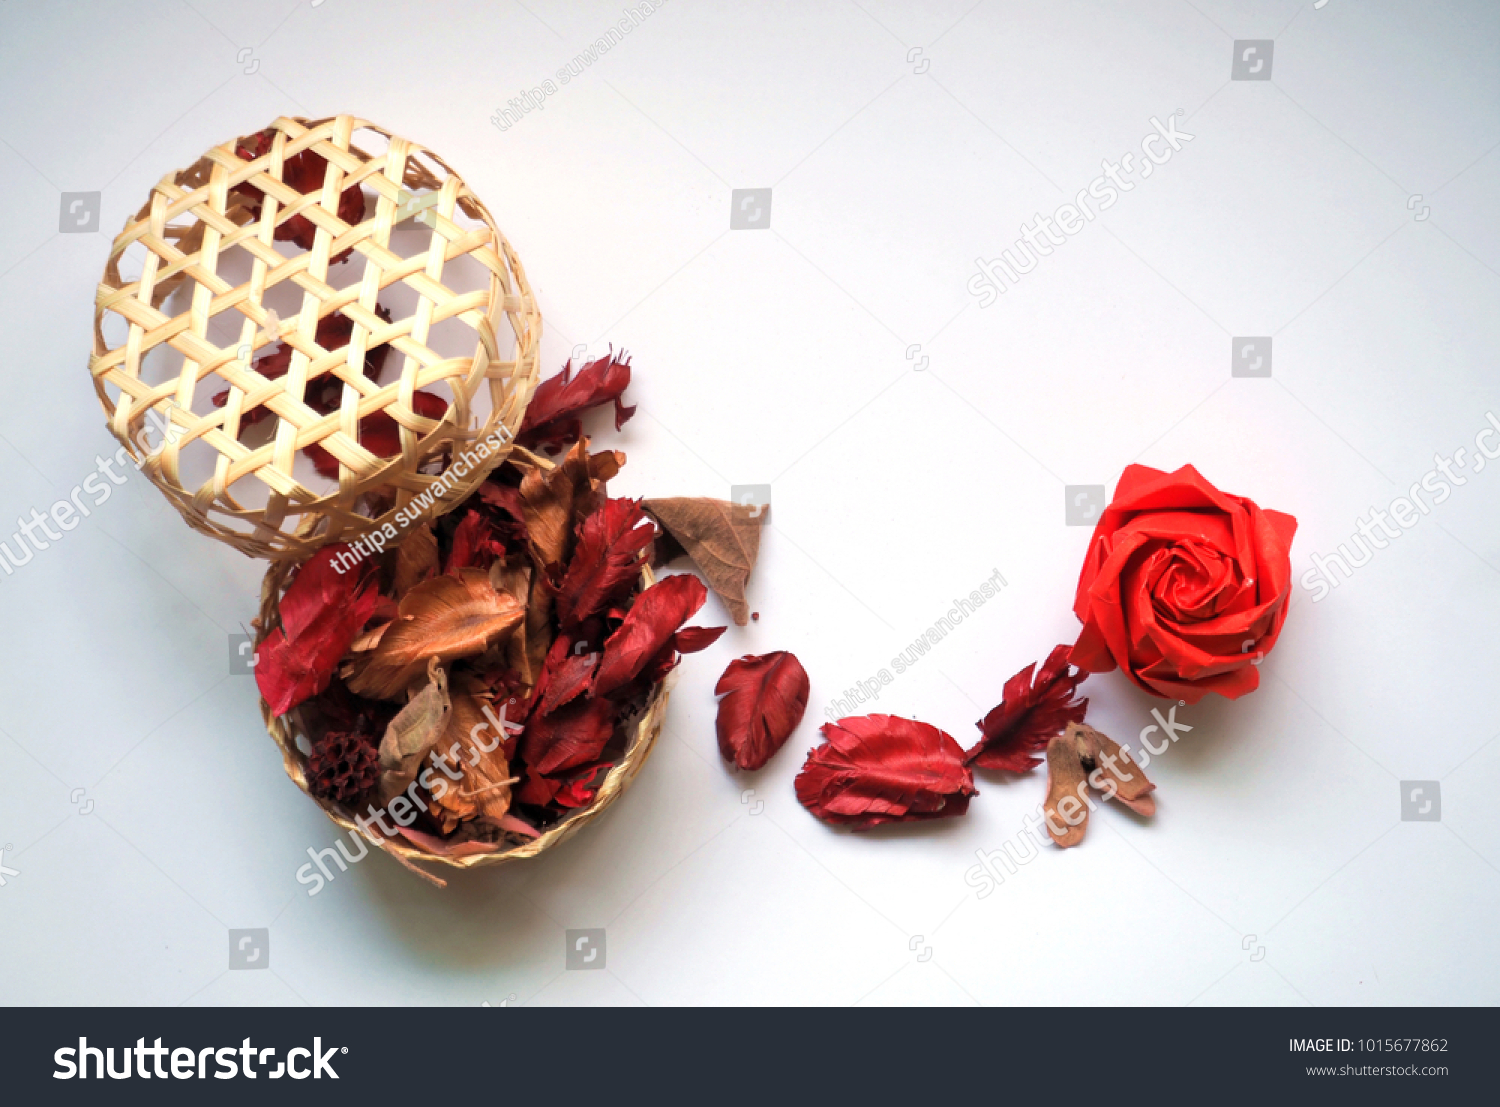 Red Origami Rose Dry Flower Spread Stock Photo Edit Now 1015677862